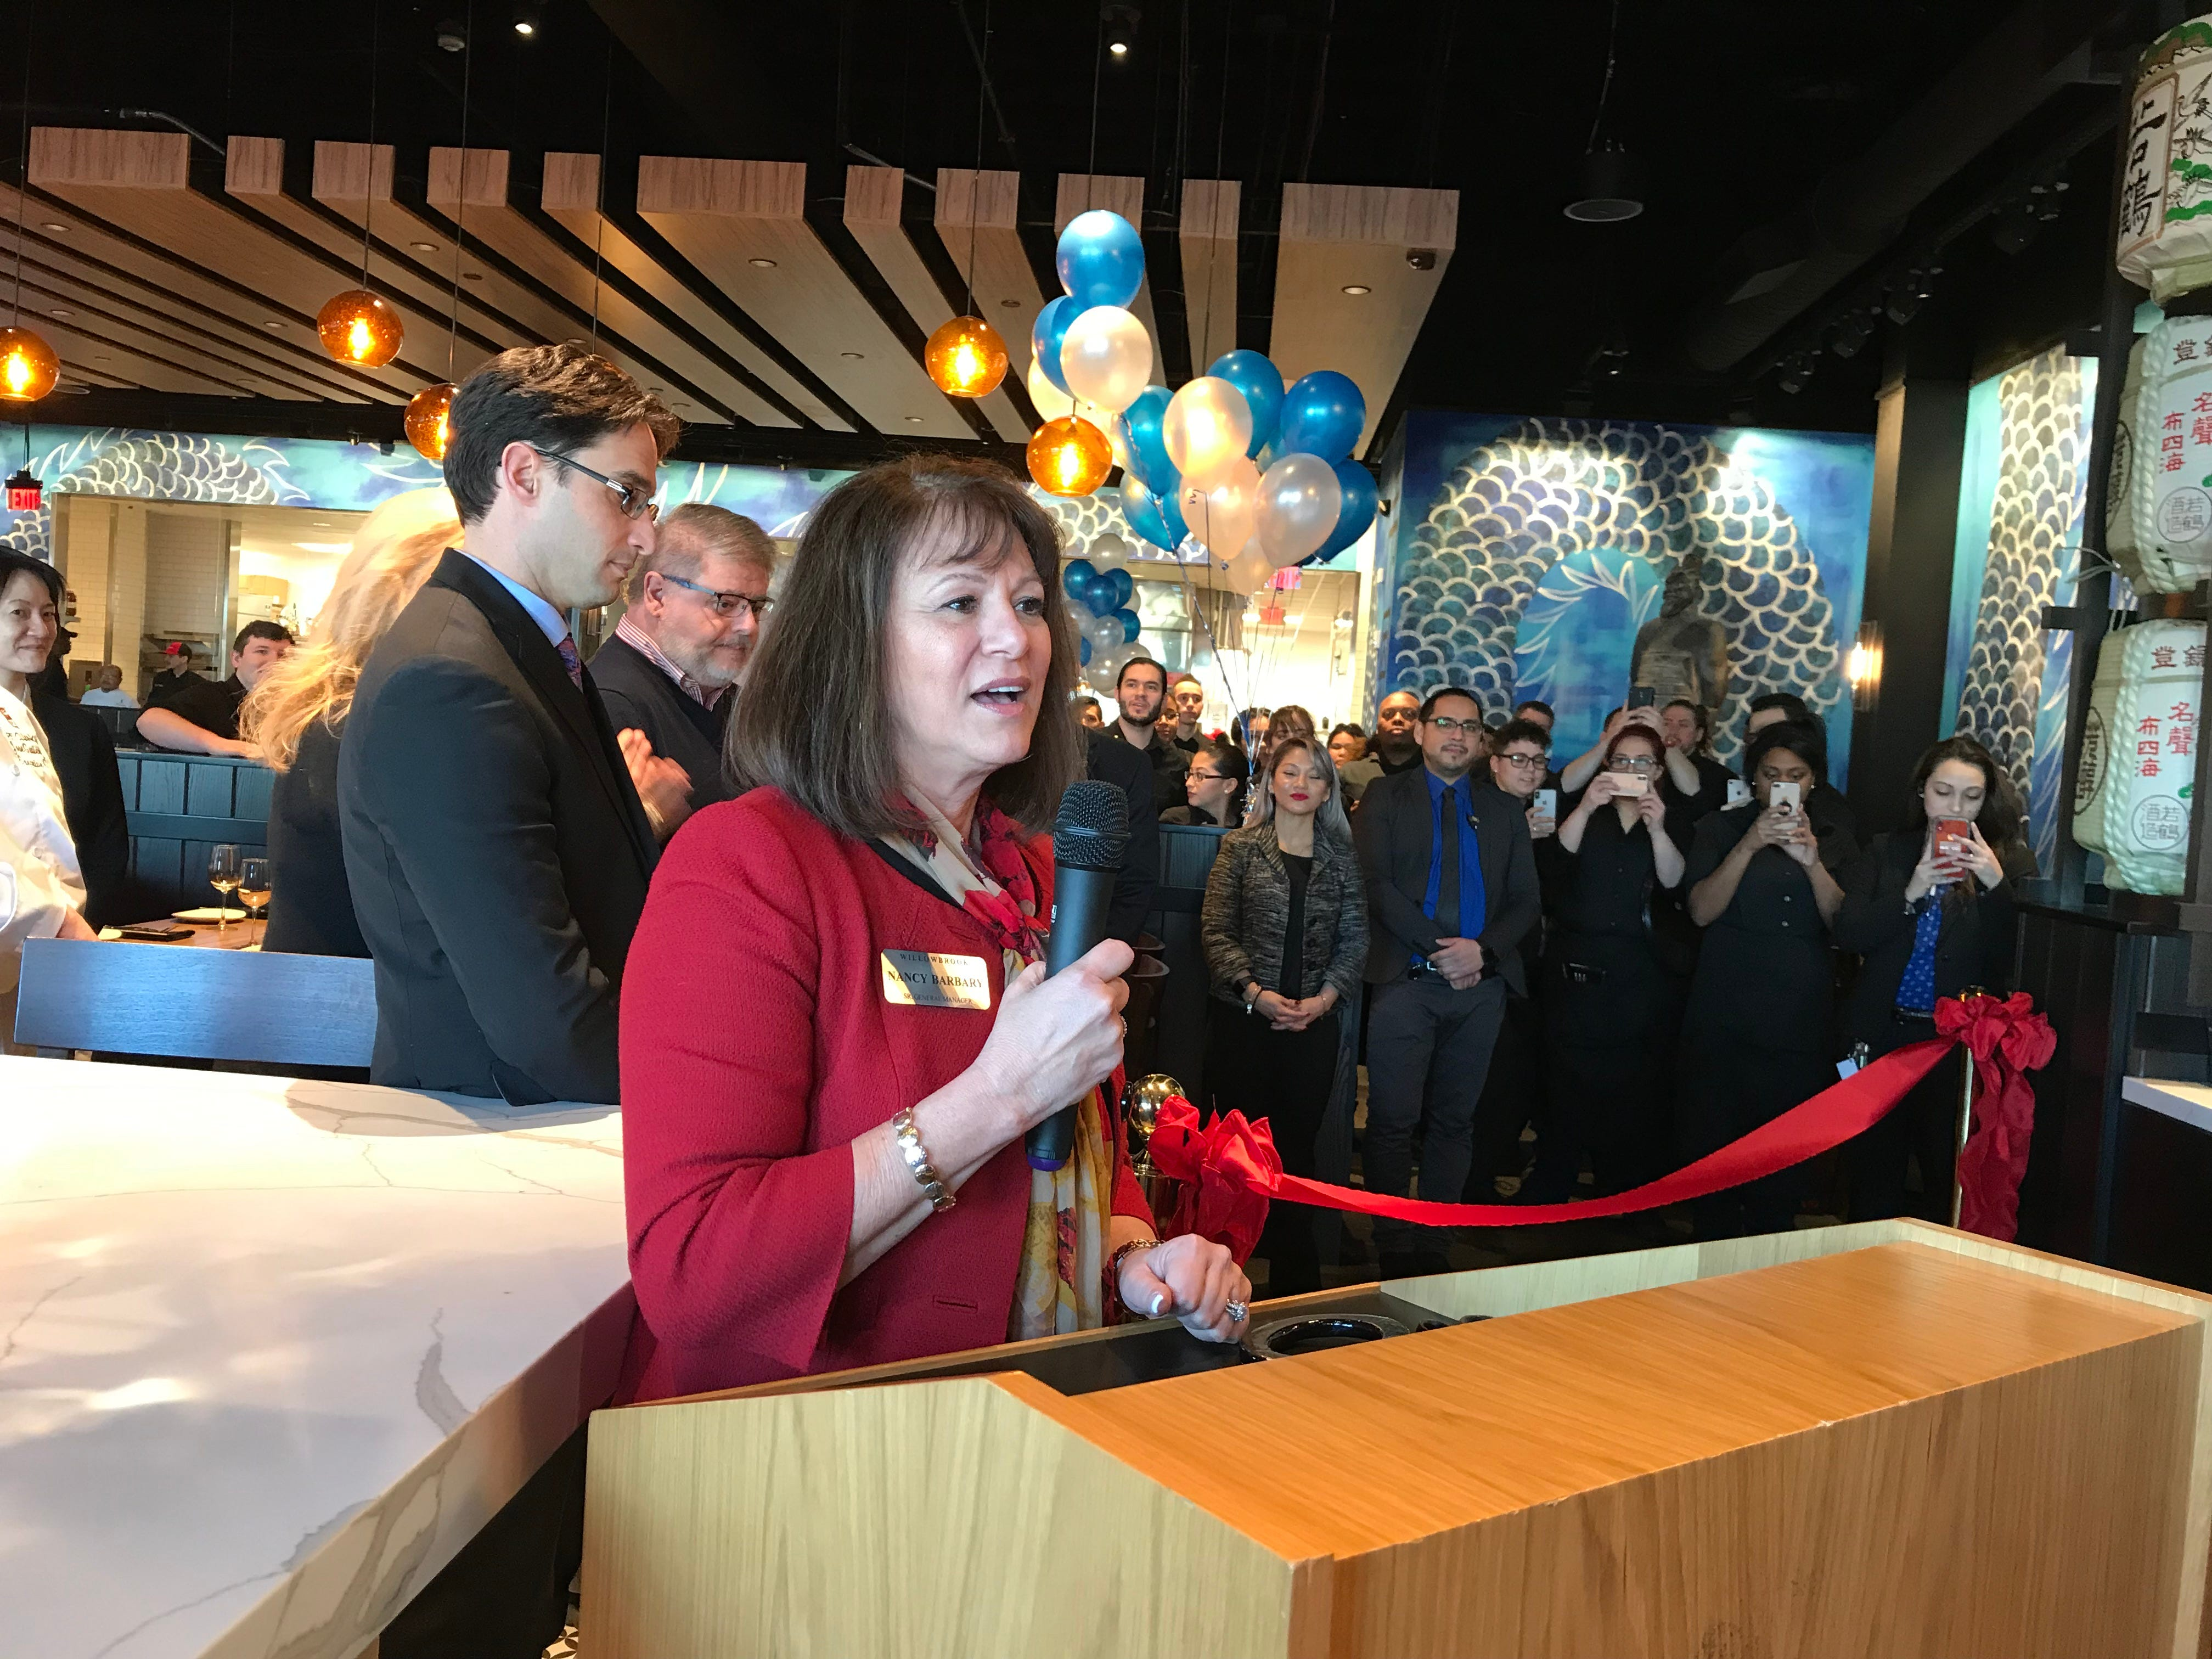 Willowbrook Mall Senior General Manager Nancy Barbary speaks at the opening of the new P.F. Chang's at Willowbrook Mall in Wayne Jan. 21, 2019.